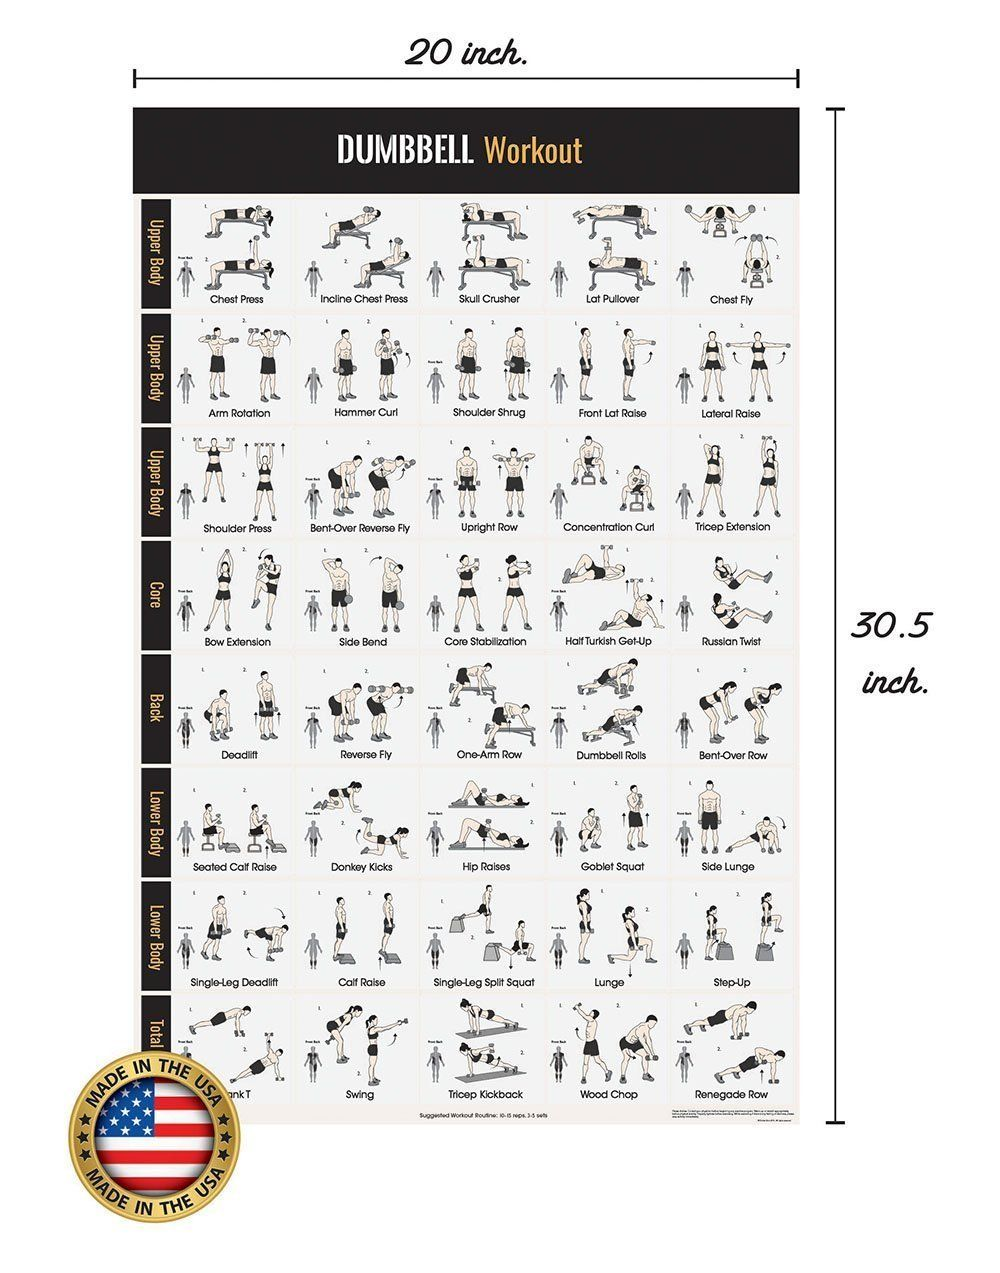 dumbbell workout exercise poster - home gym - dumbbell workouts - strength training